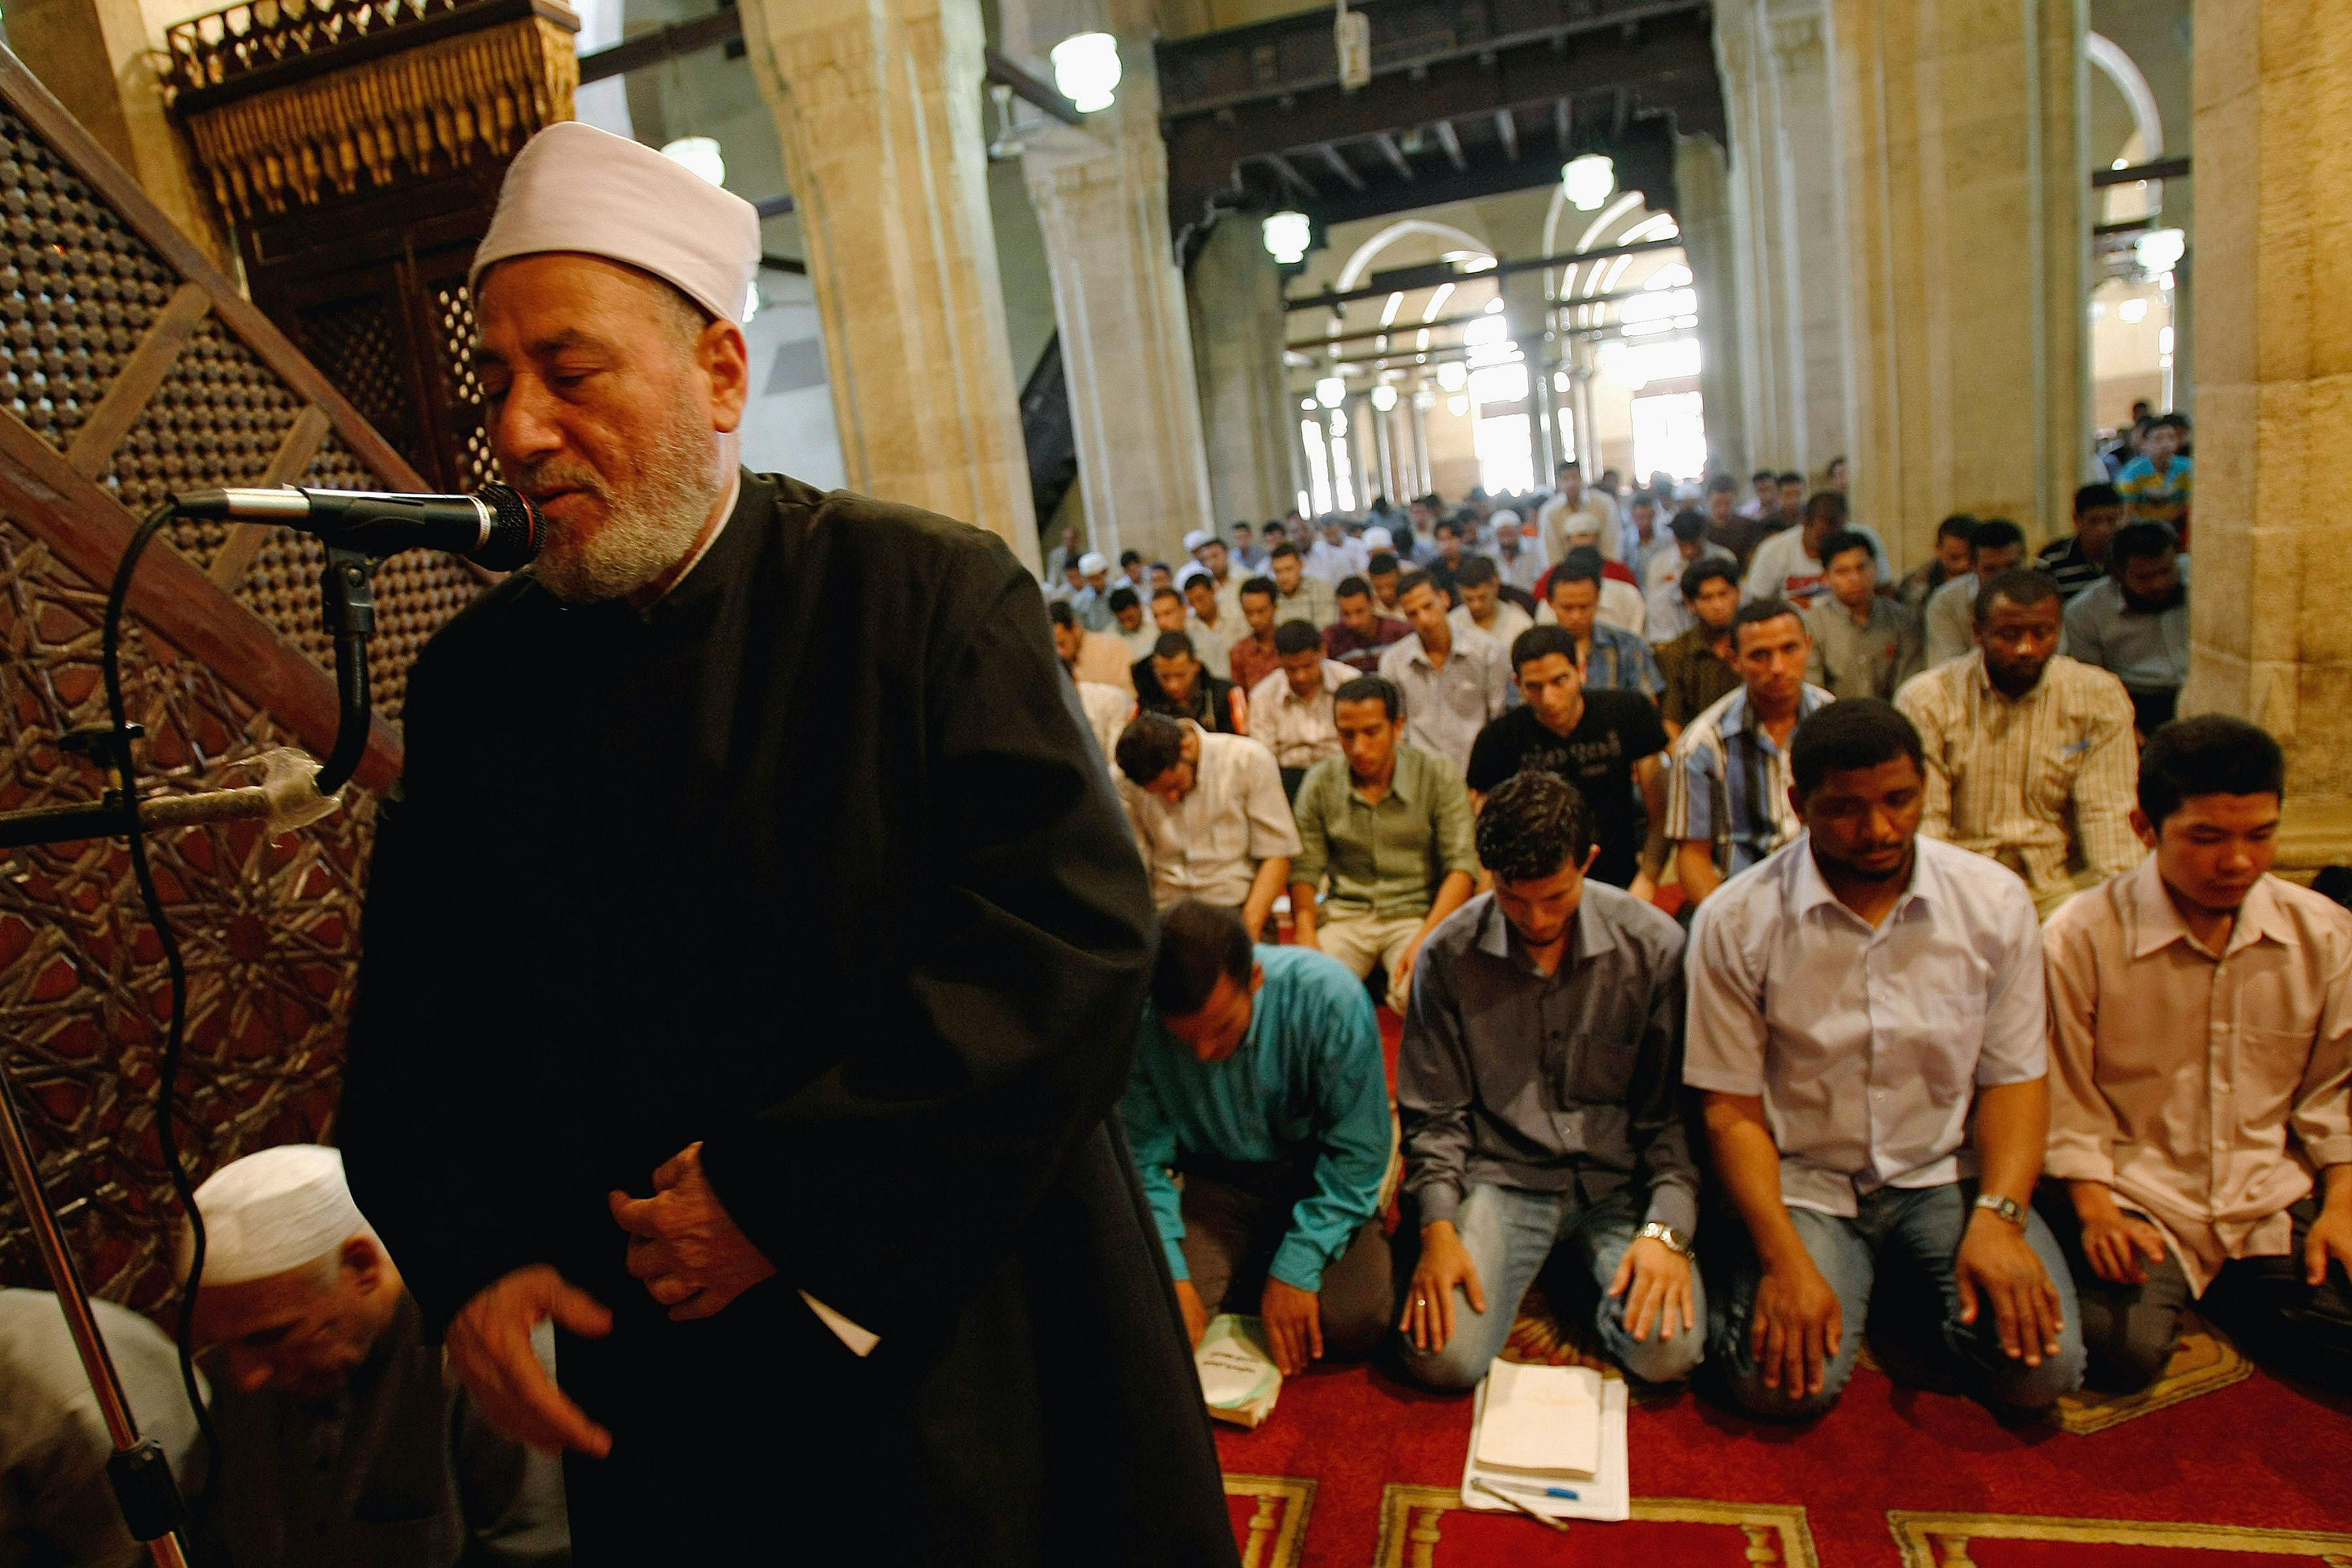 What Is The Role Of The Imam In Islam